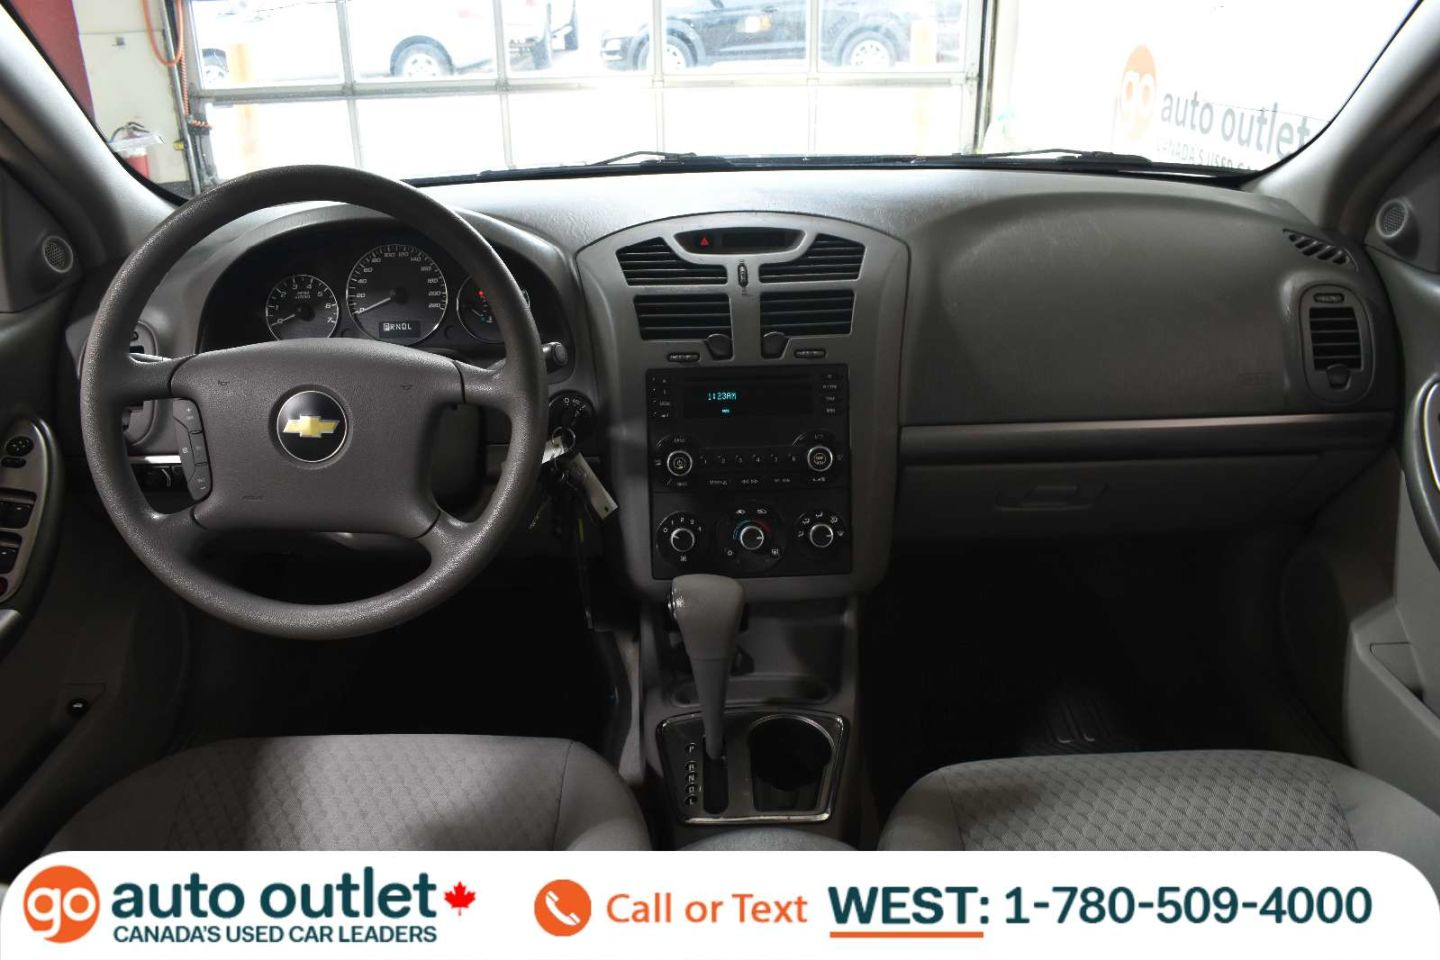 2007 Chevrolet Malibu LT for sale in Edmonton, Alberta